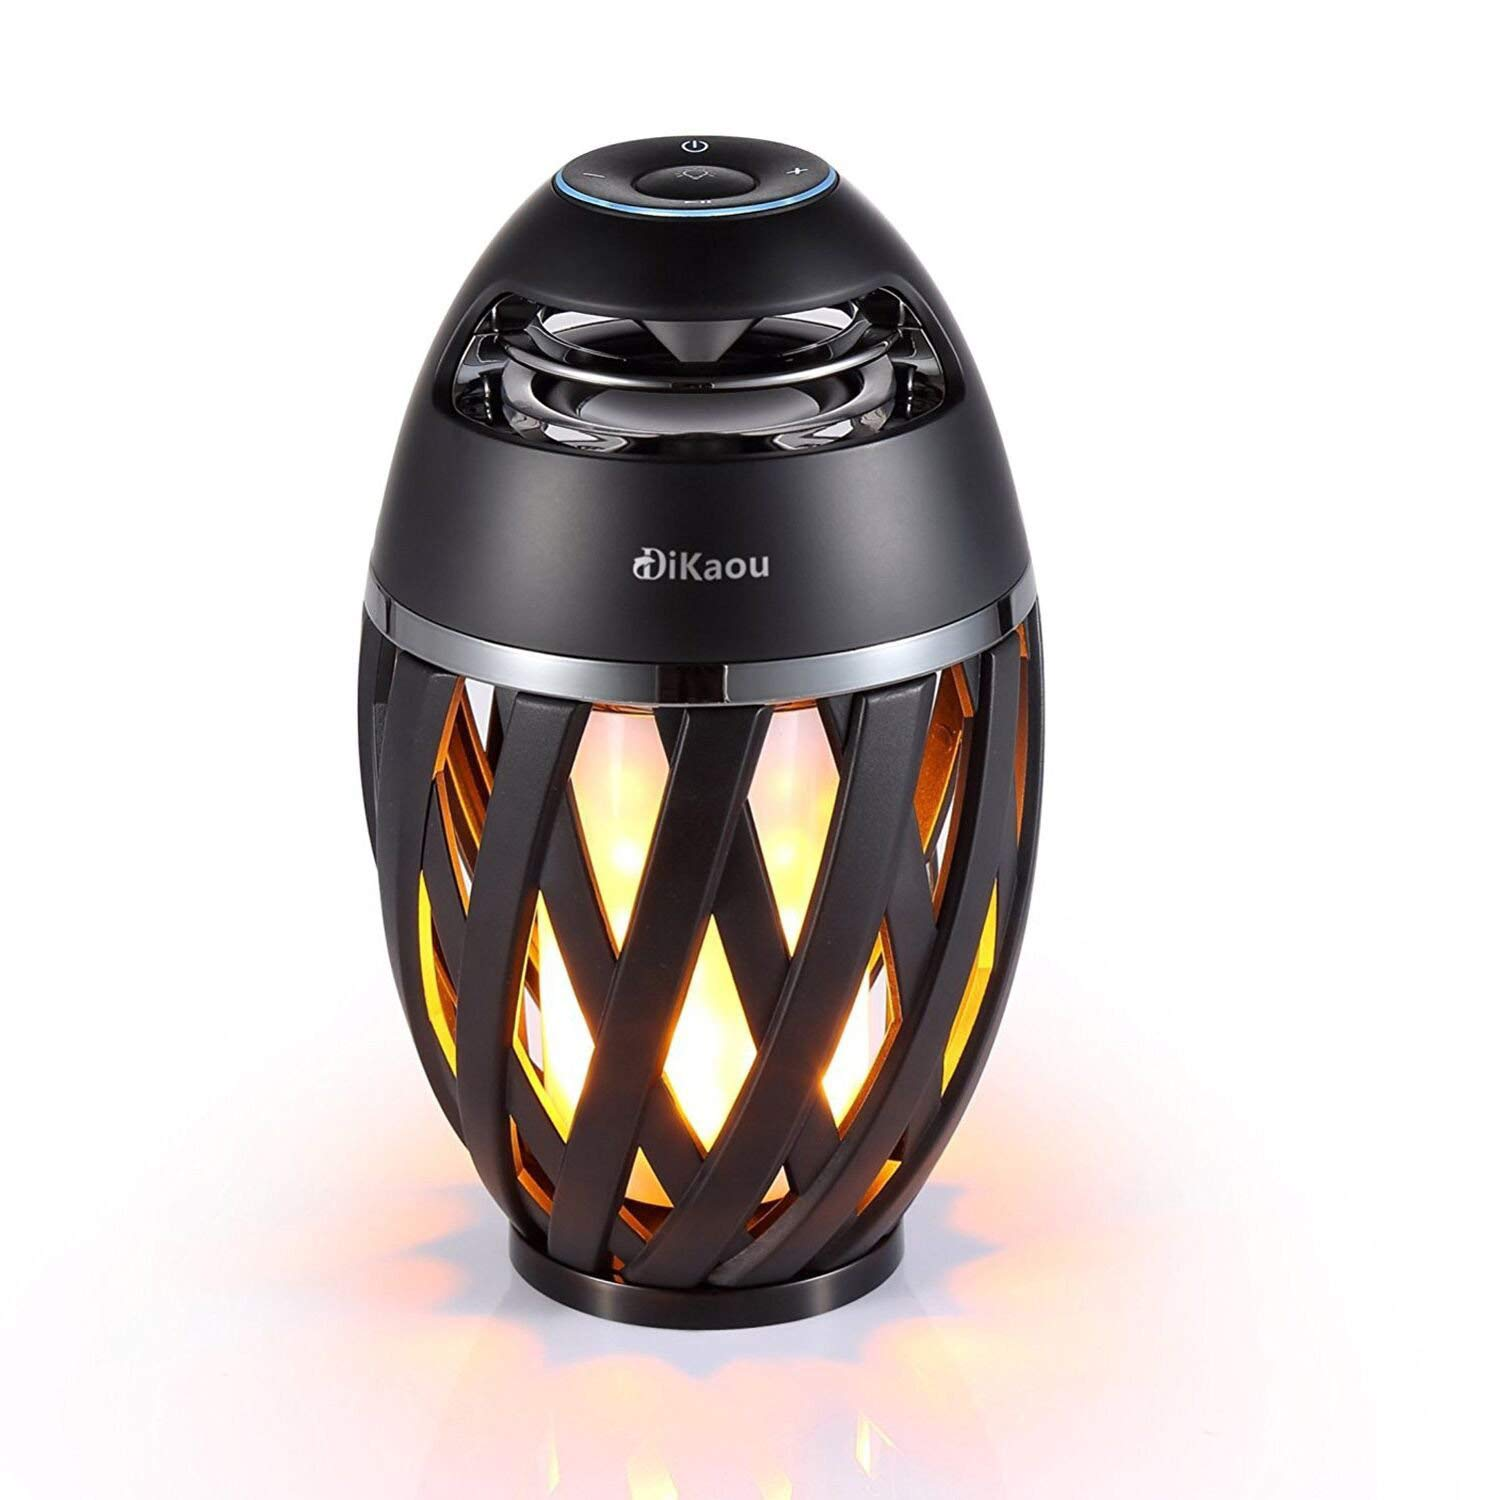 DIKAOU Led Flame Speaker, Torch Atmosphere Bluetooth Speakers&Outdoor Portable Stereo Speaker with HD Audio and Enhanced Bass,LED Flickers Warm Yellow Lights BT4.2 for iPhone/iPad/Android